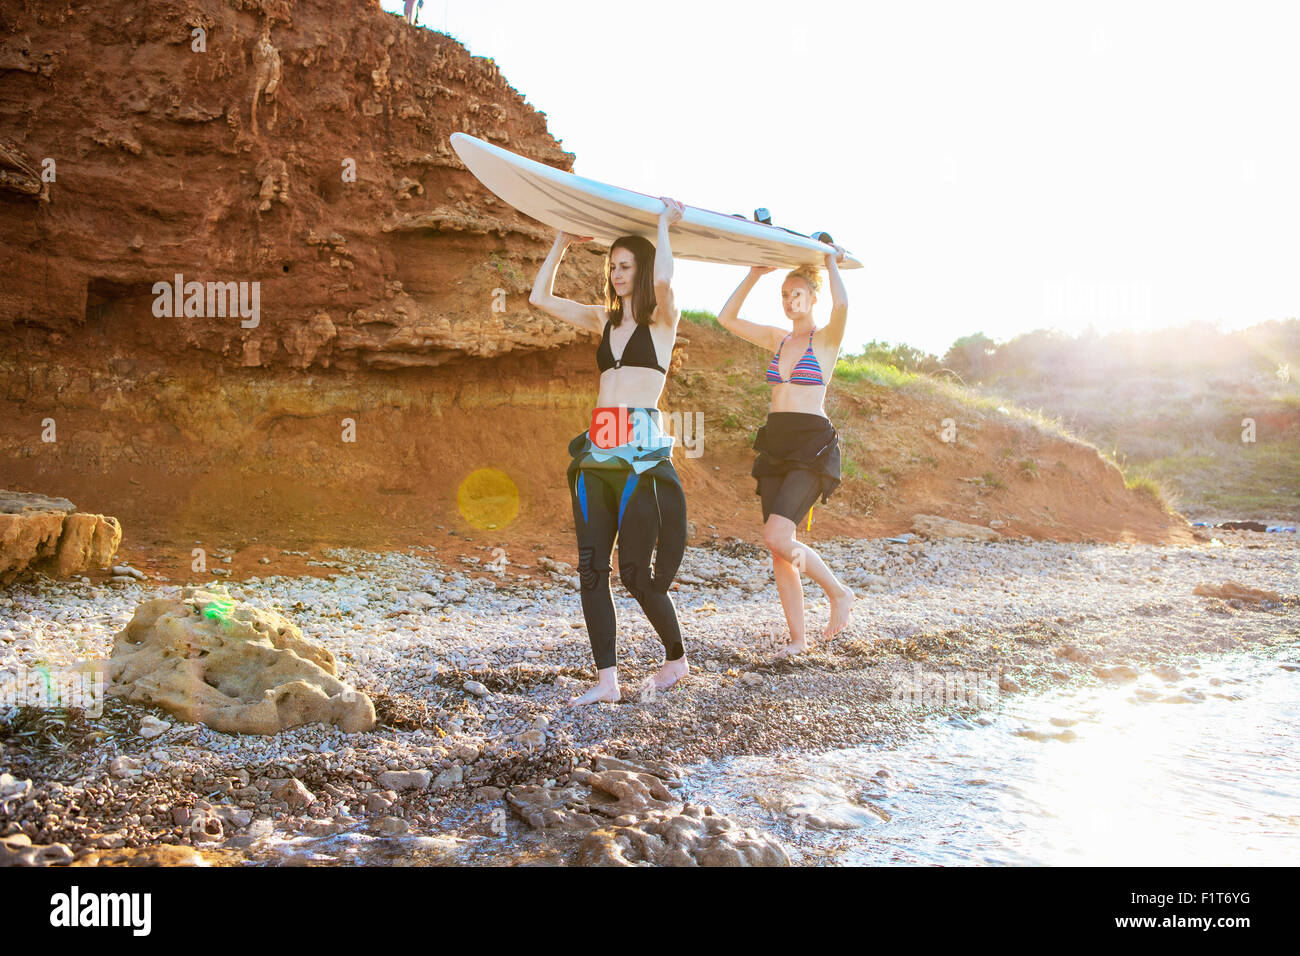 Female surfers carrying surfboard - Stock Image